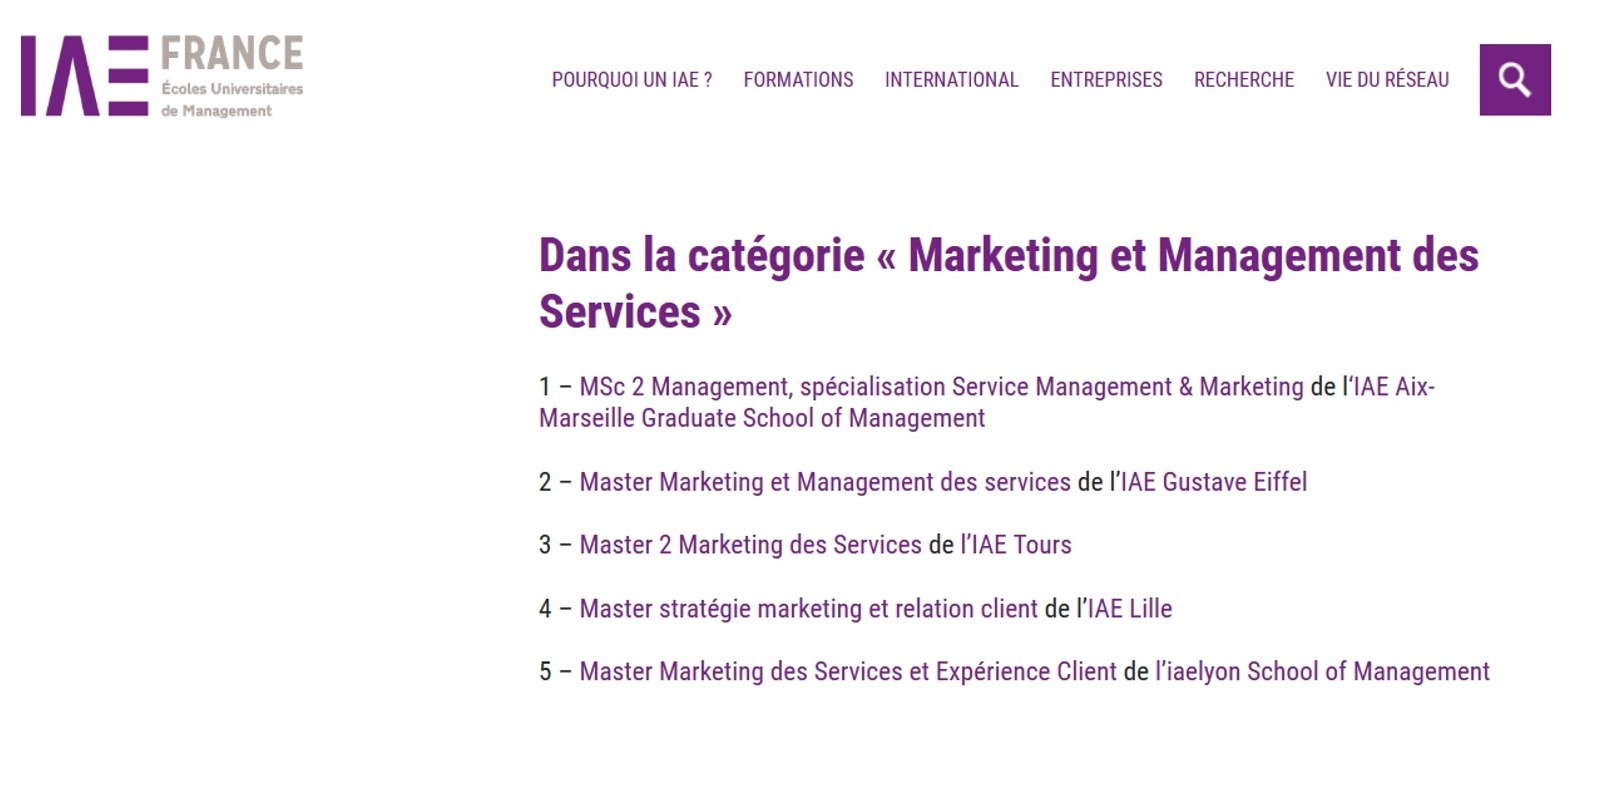 Classement SMBG - Master marketing - IAE Tours